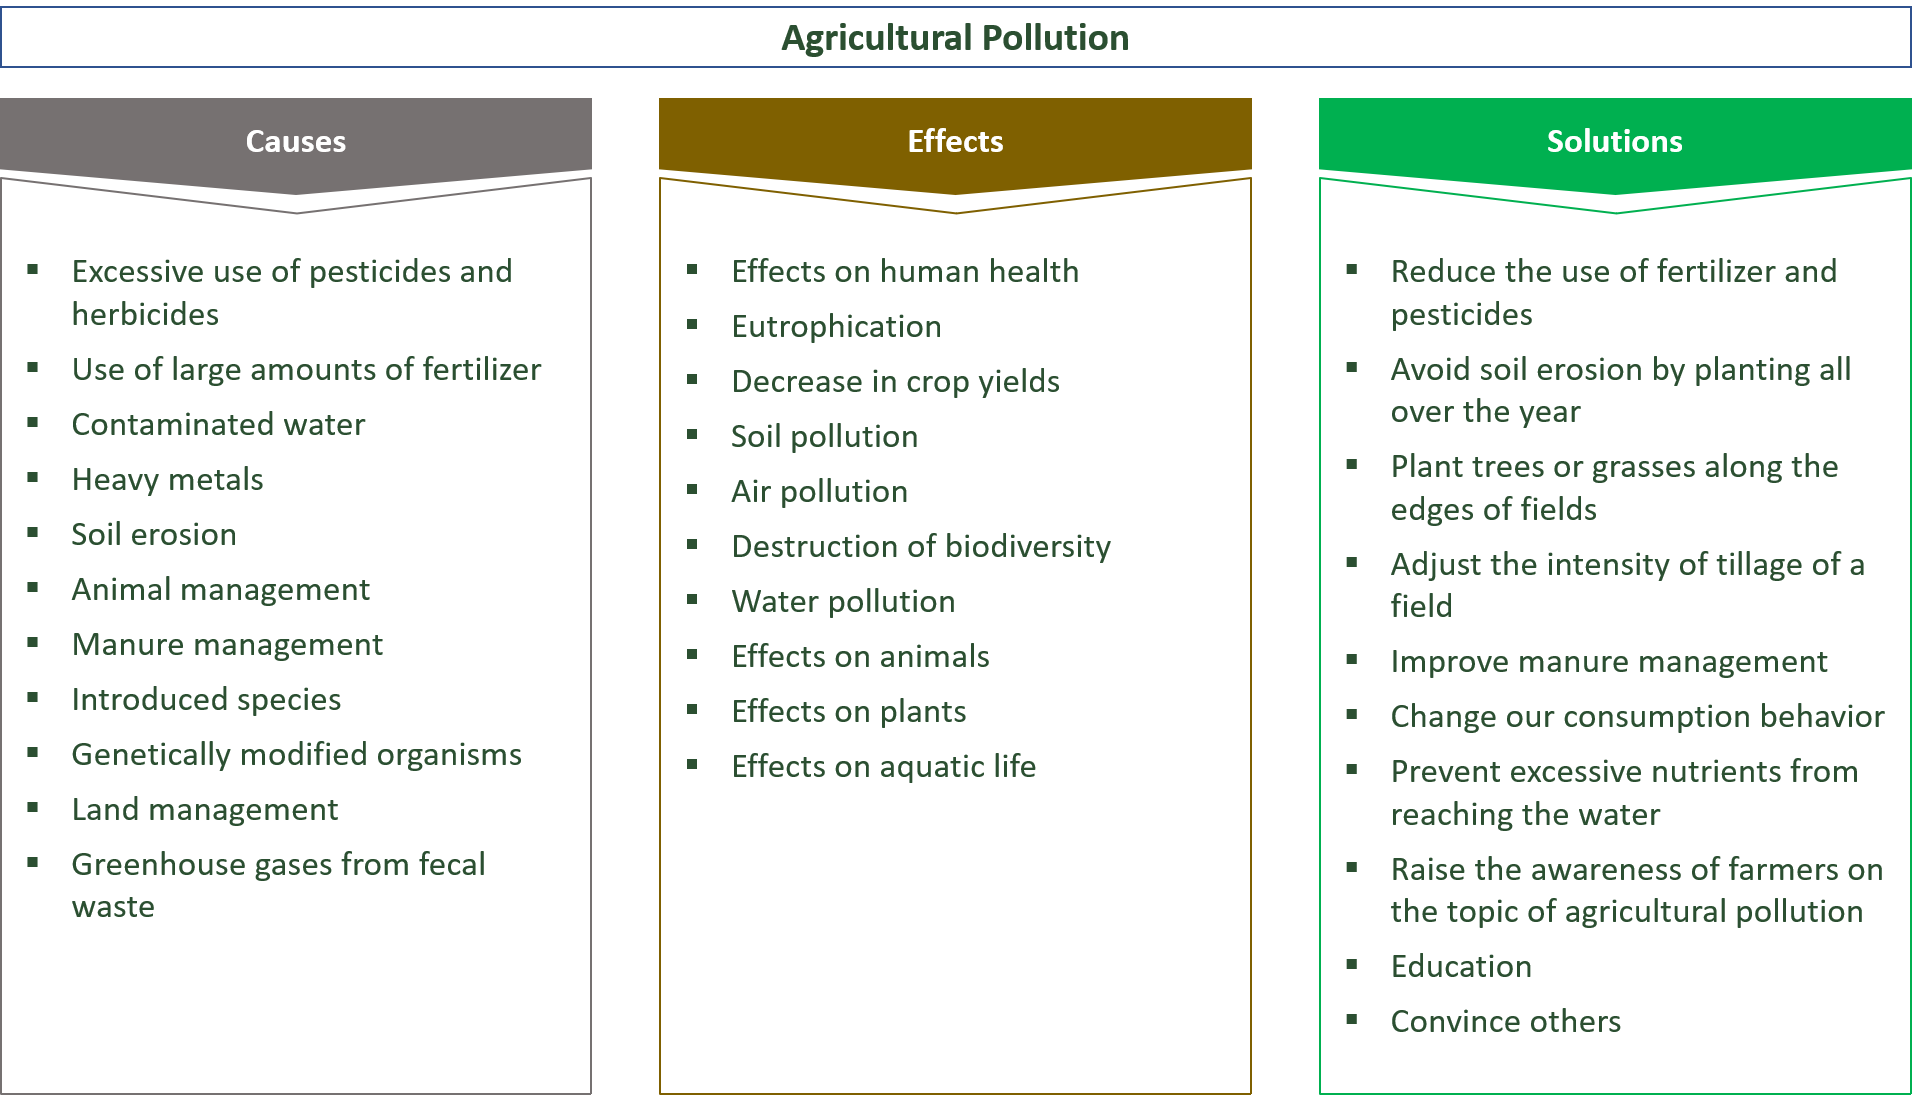 Causes, Effects and Solutions for Agricultural Pollution